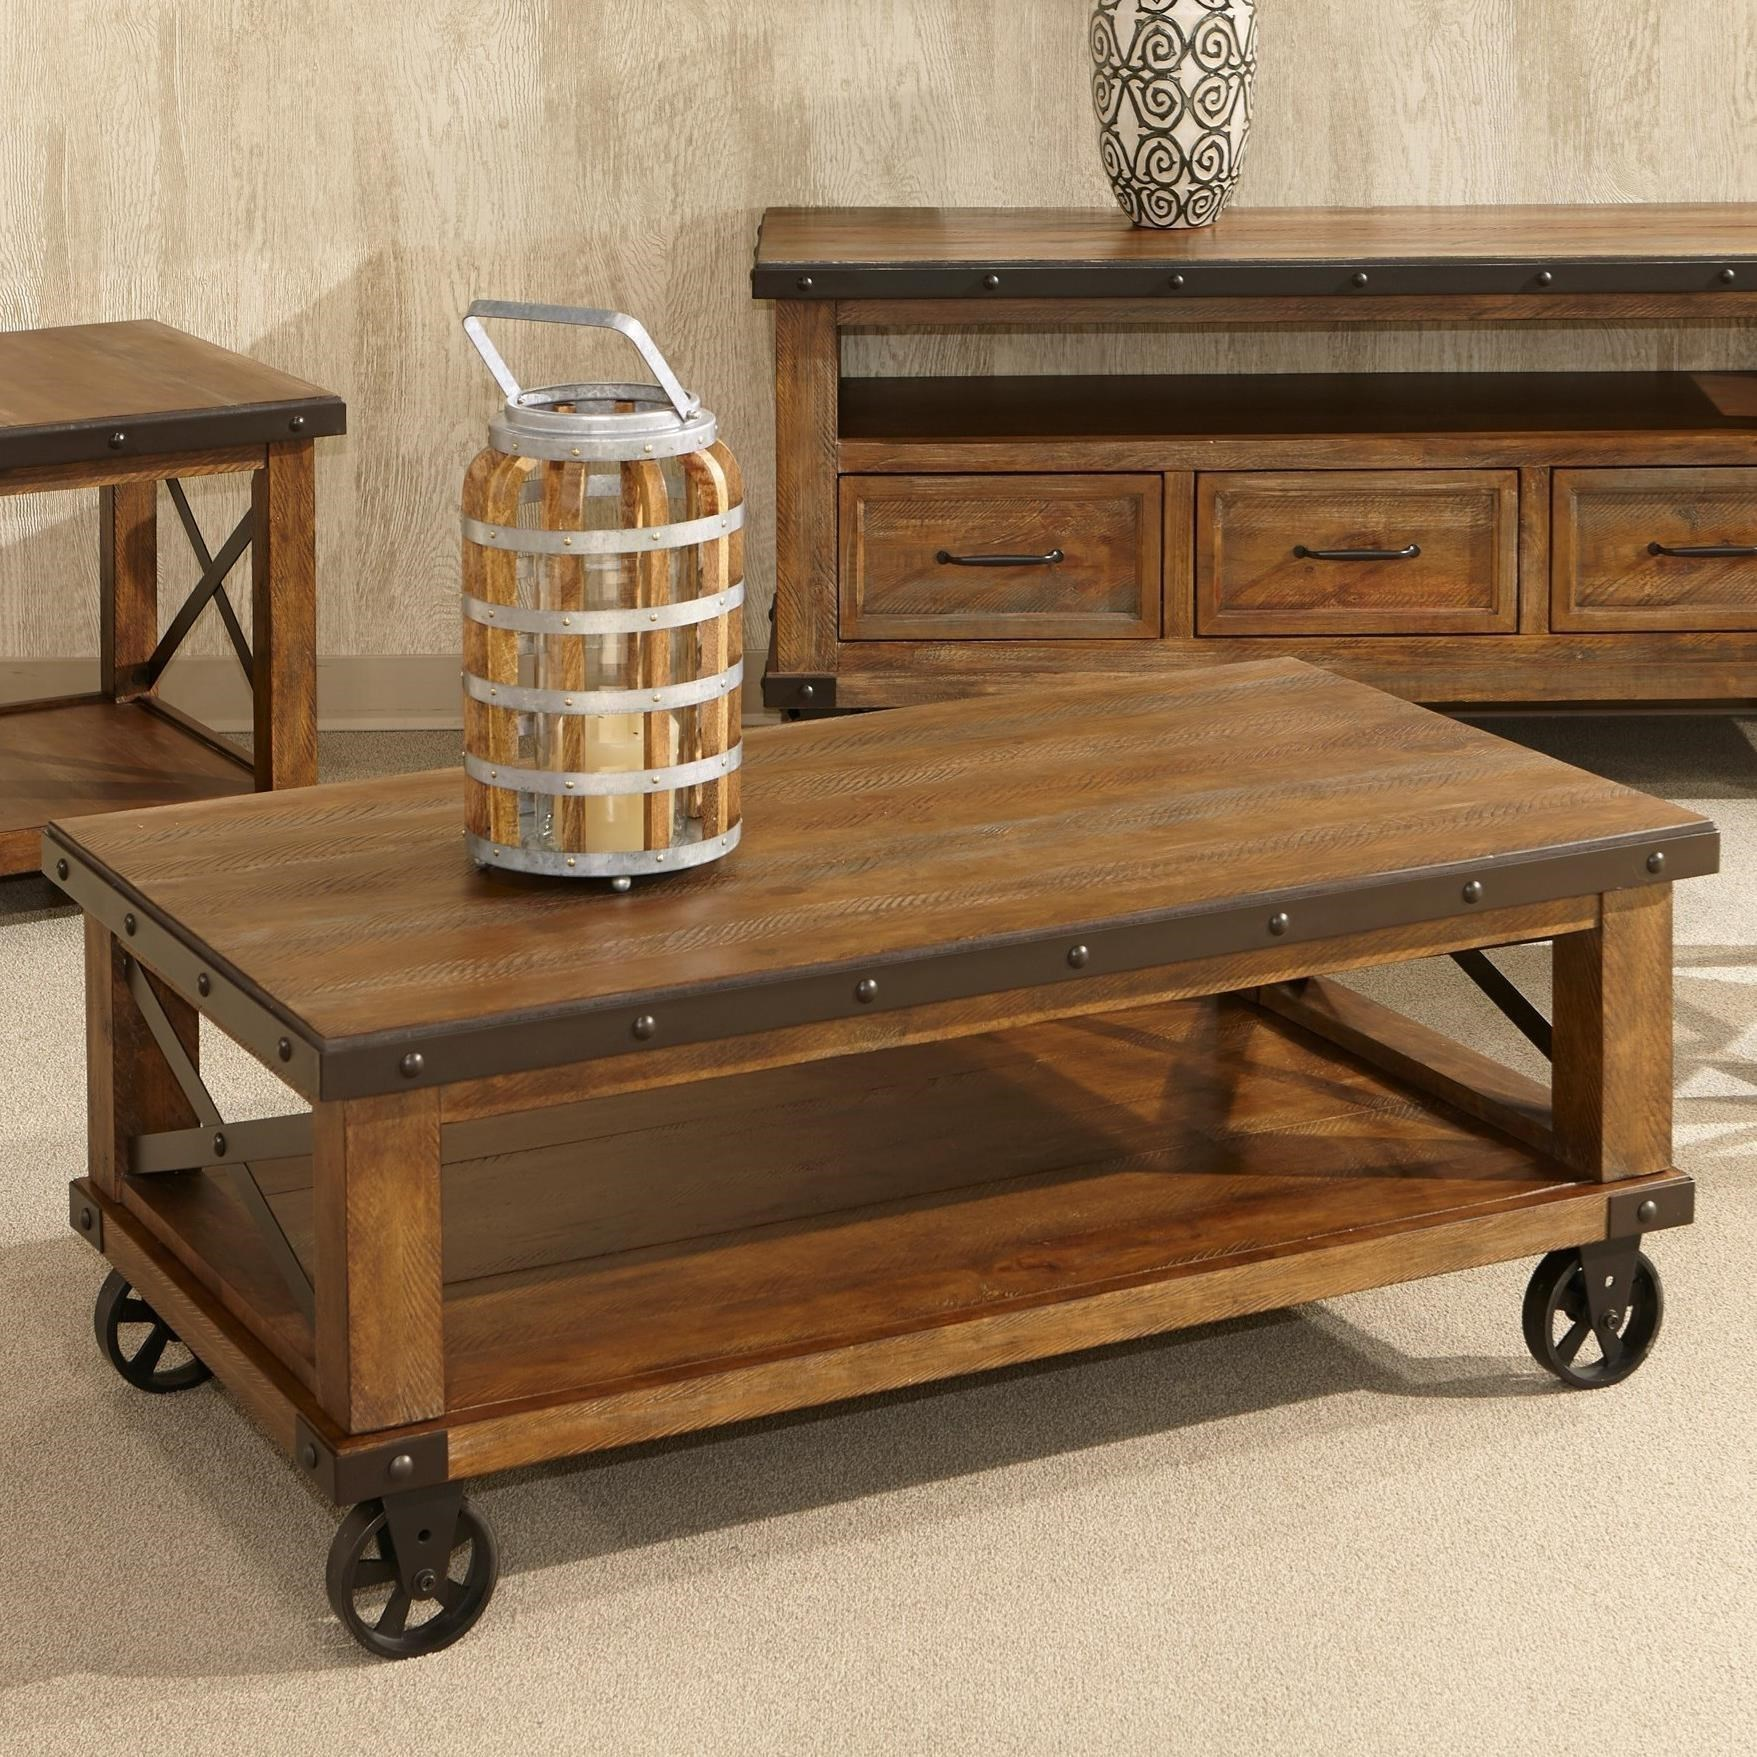 Intercon Taos Rustic Coffee Table With Casters